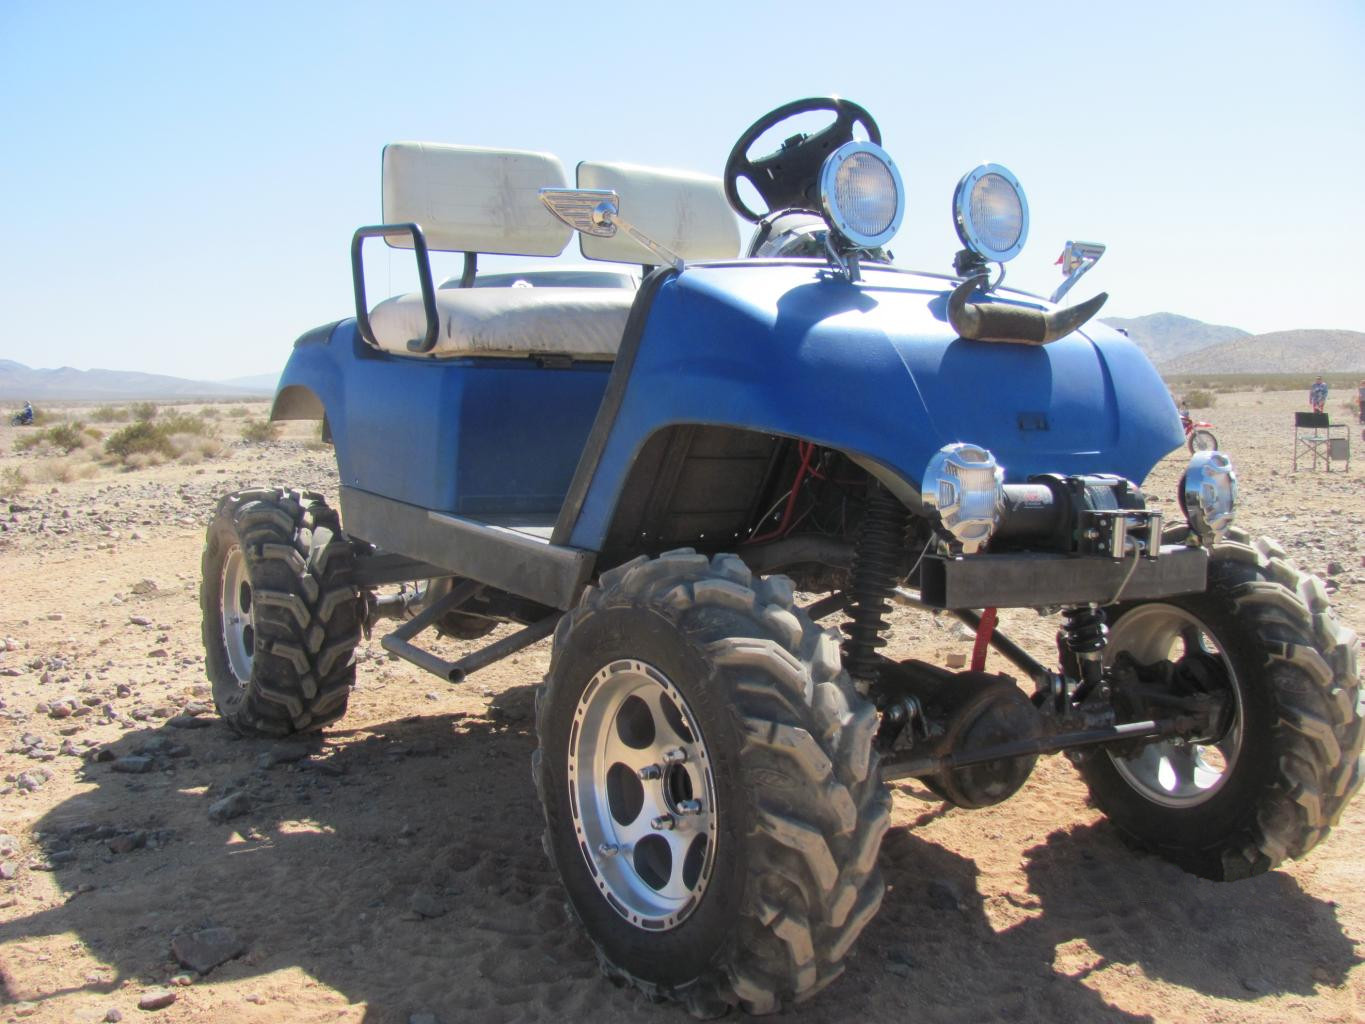 Yamaha Golf Cart Adventurer